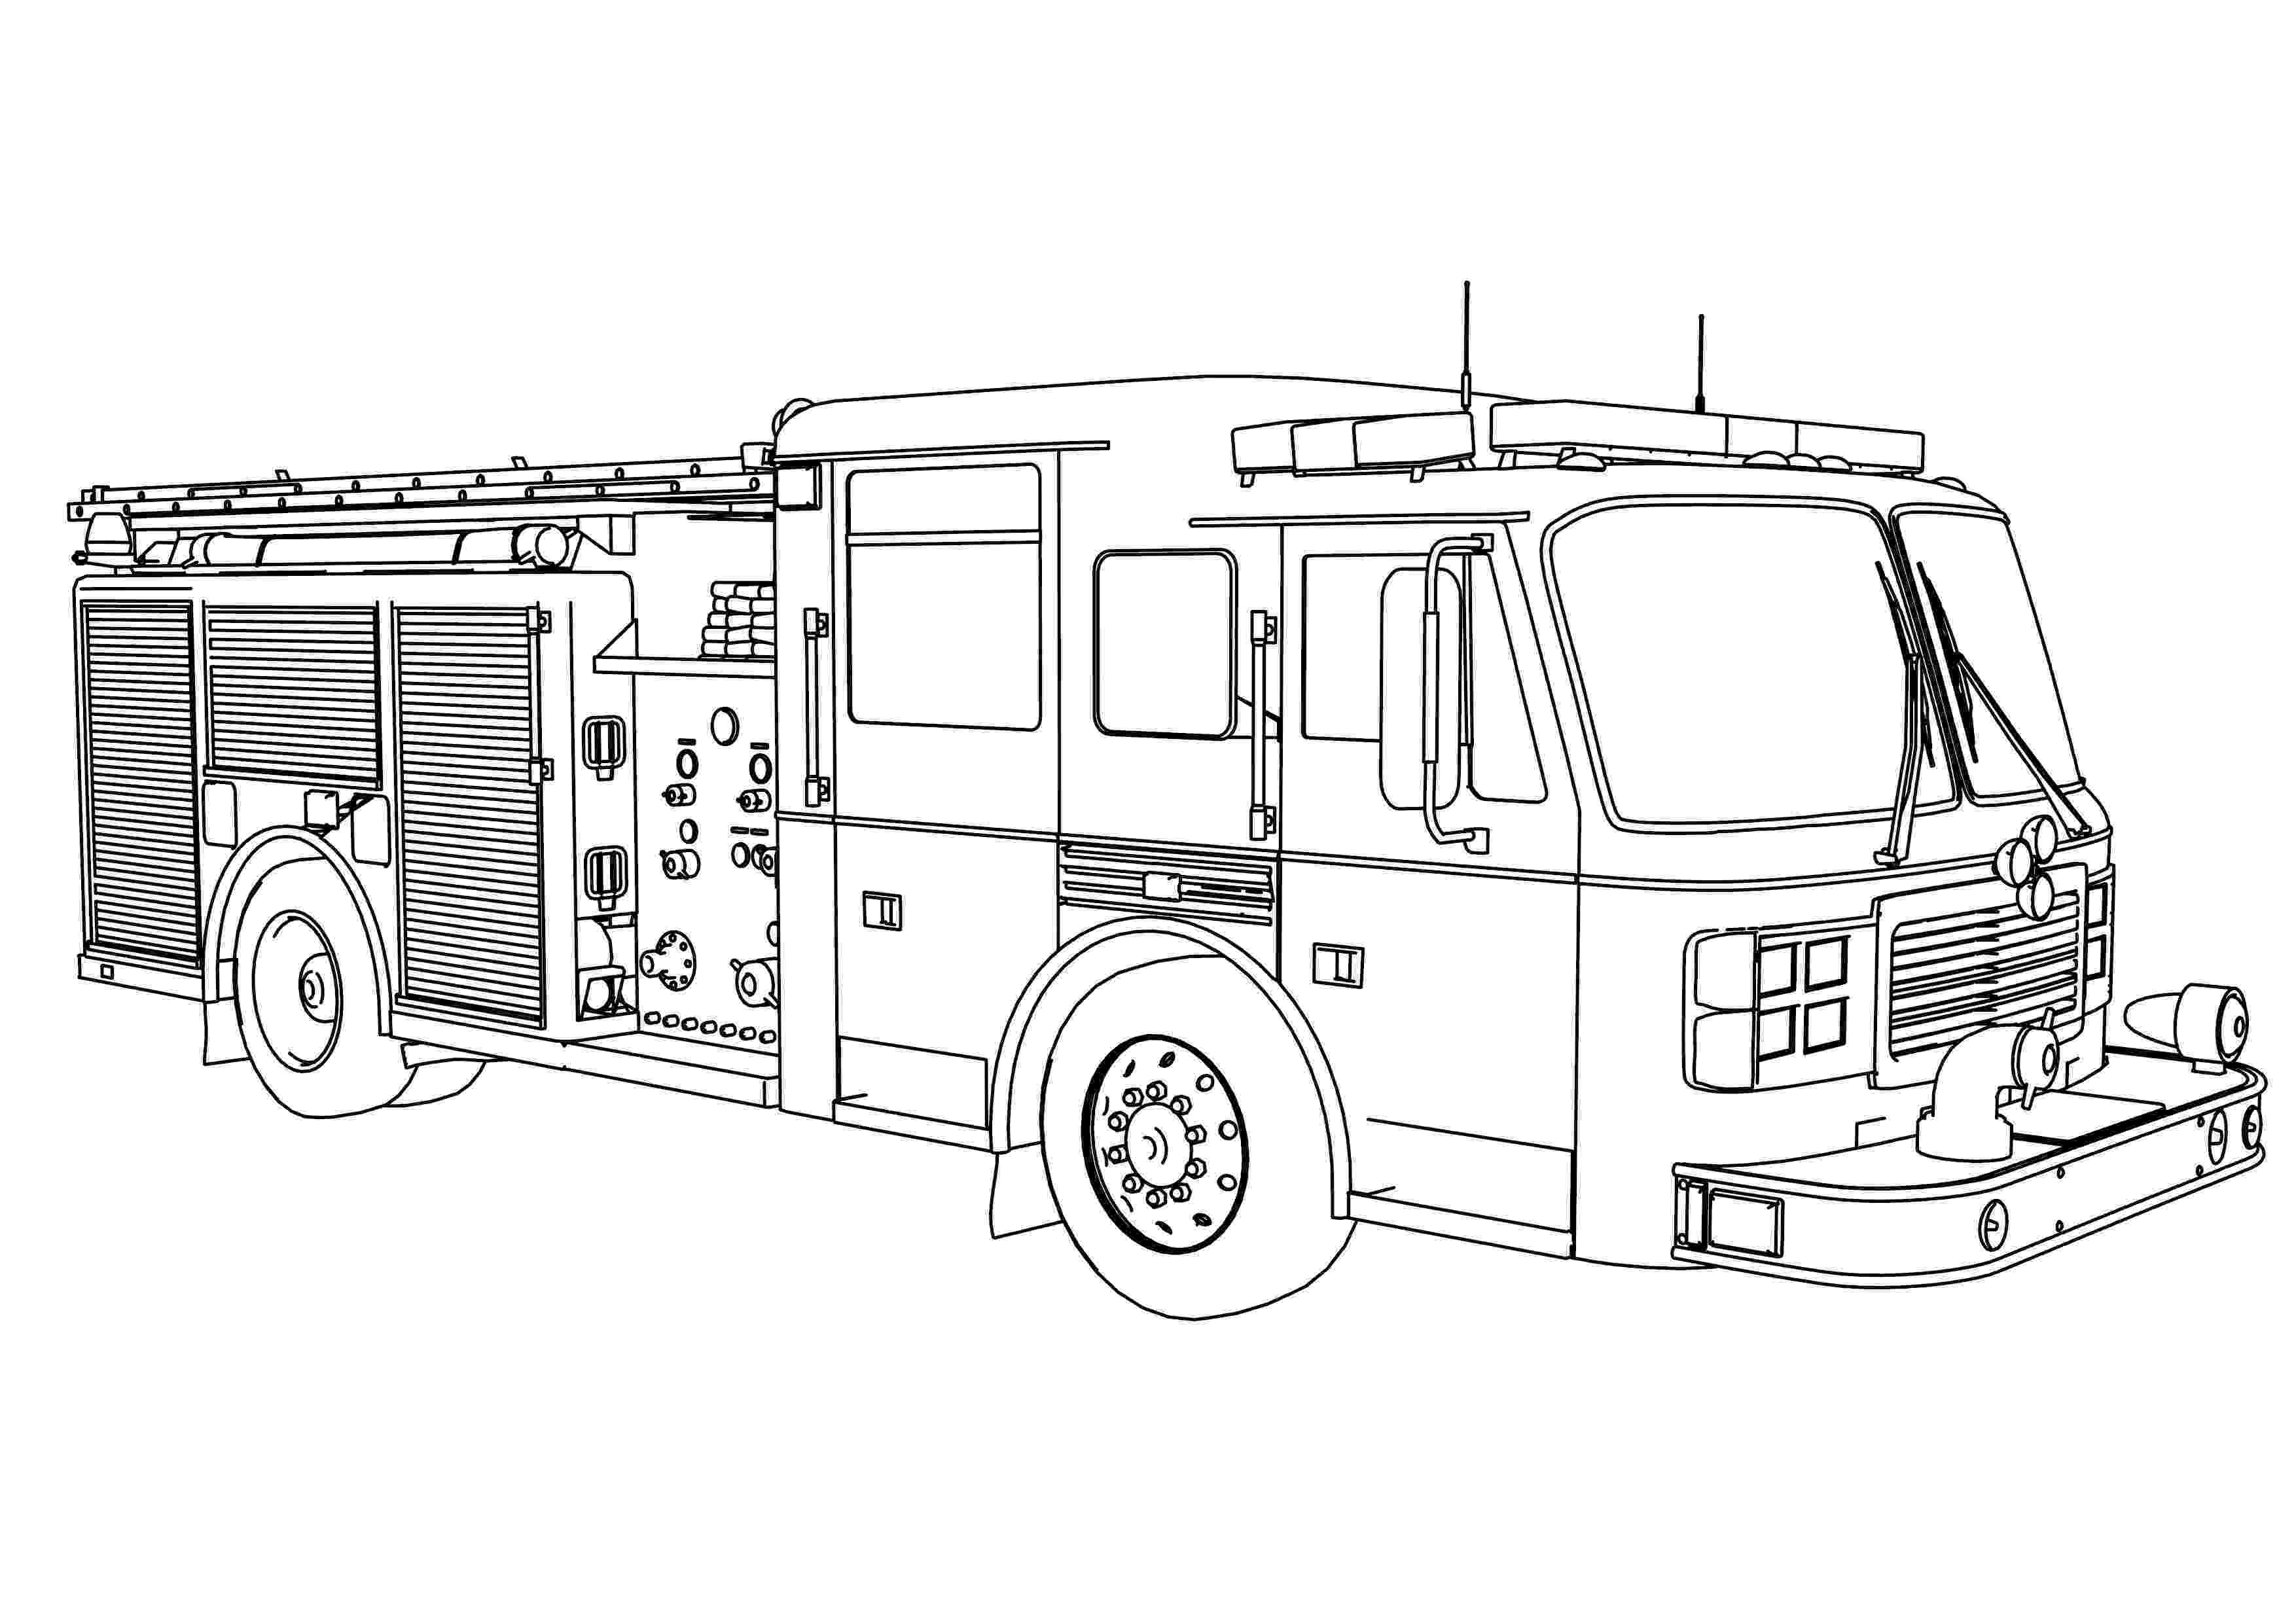 free fire truck coloring pages to print fire truck coloring pages to download and print for free fire coloring pages free to truck print